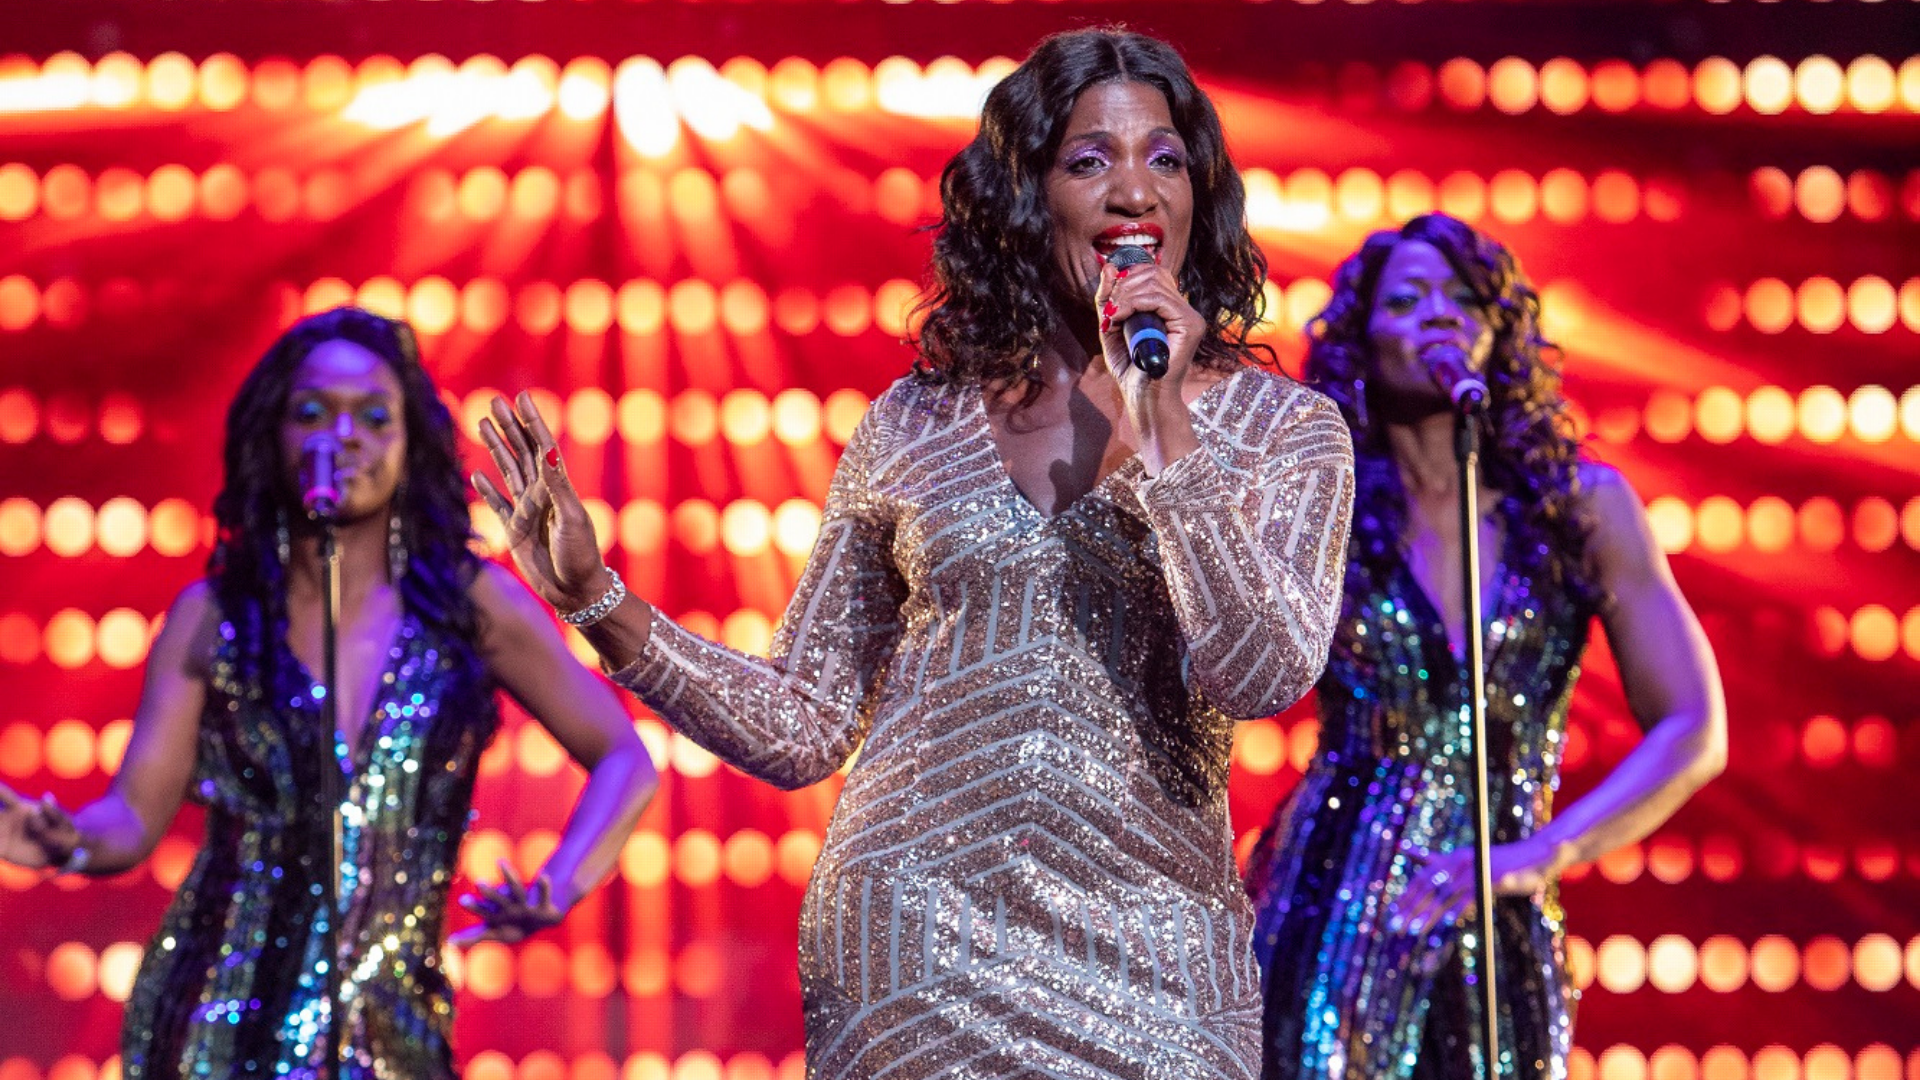 Lost in Music production shot: a female singer stands in the foreground wearing a long sequined dress, while two female backing singers dance in the background